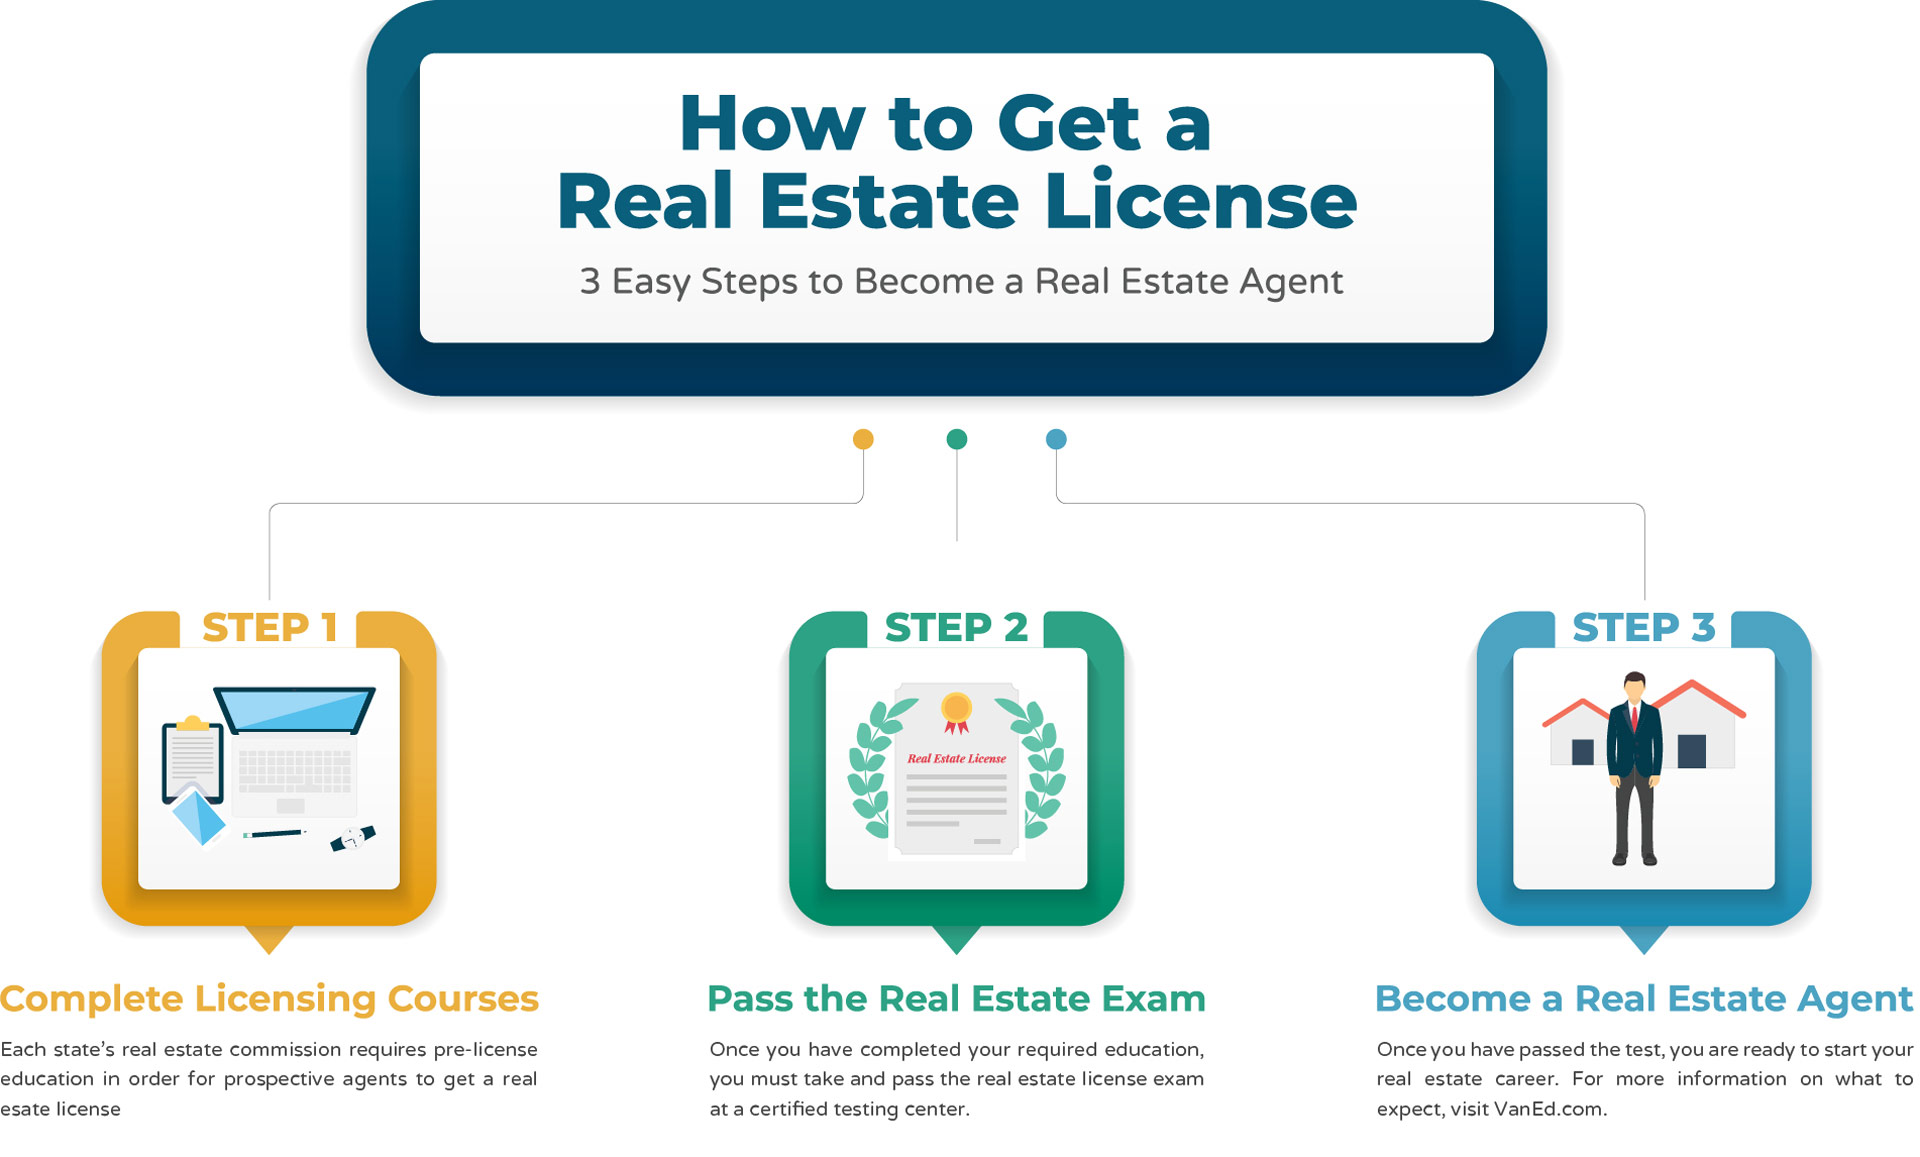 How to Get a Real Estate License Online